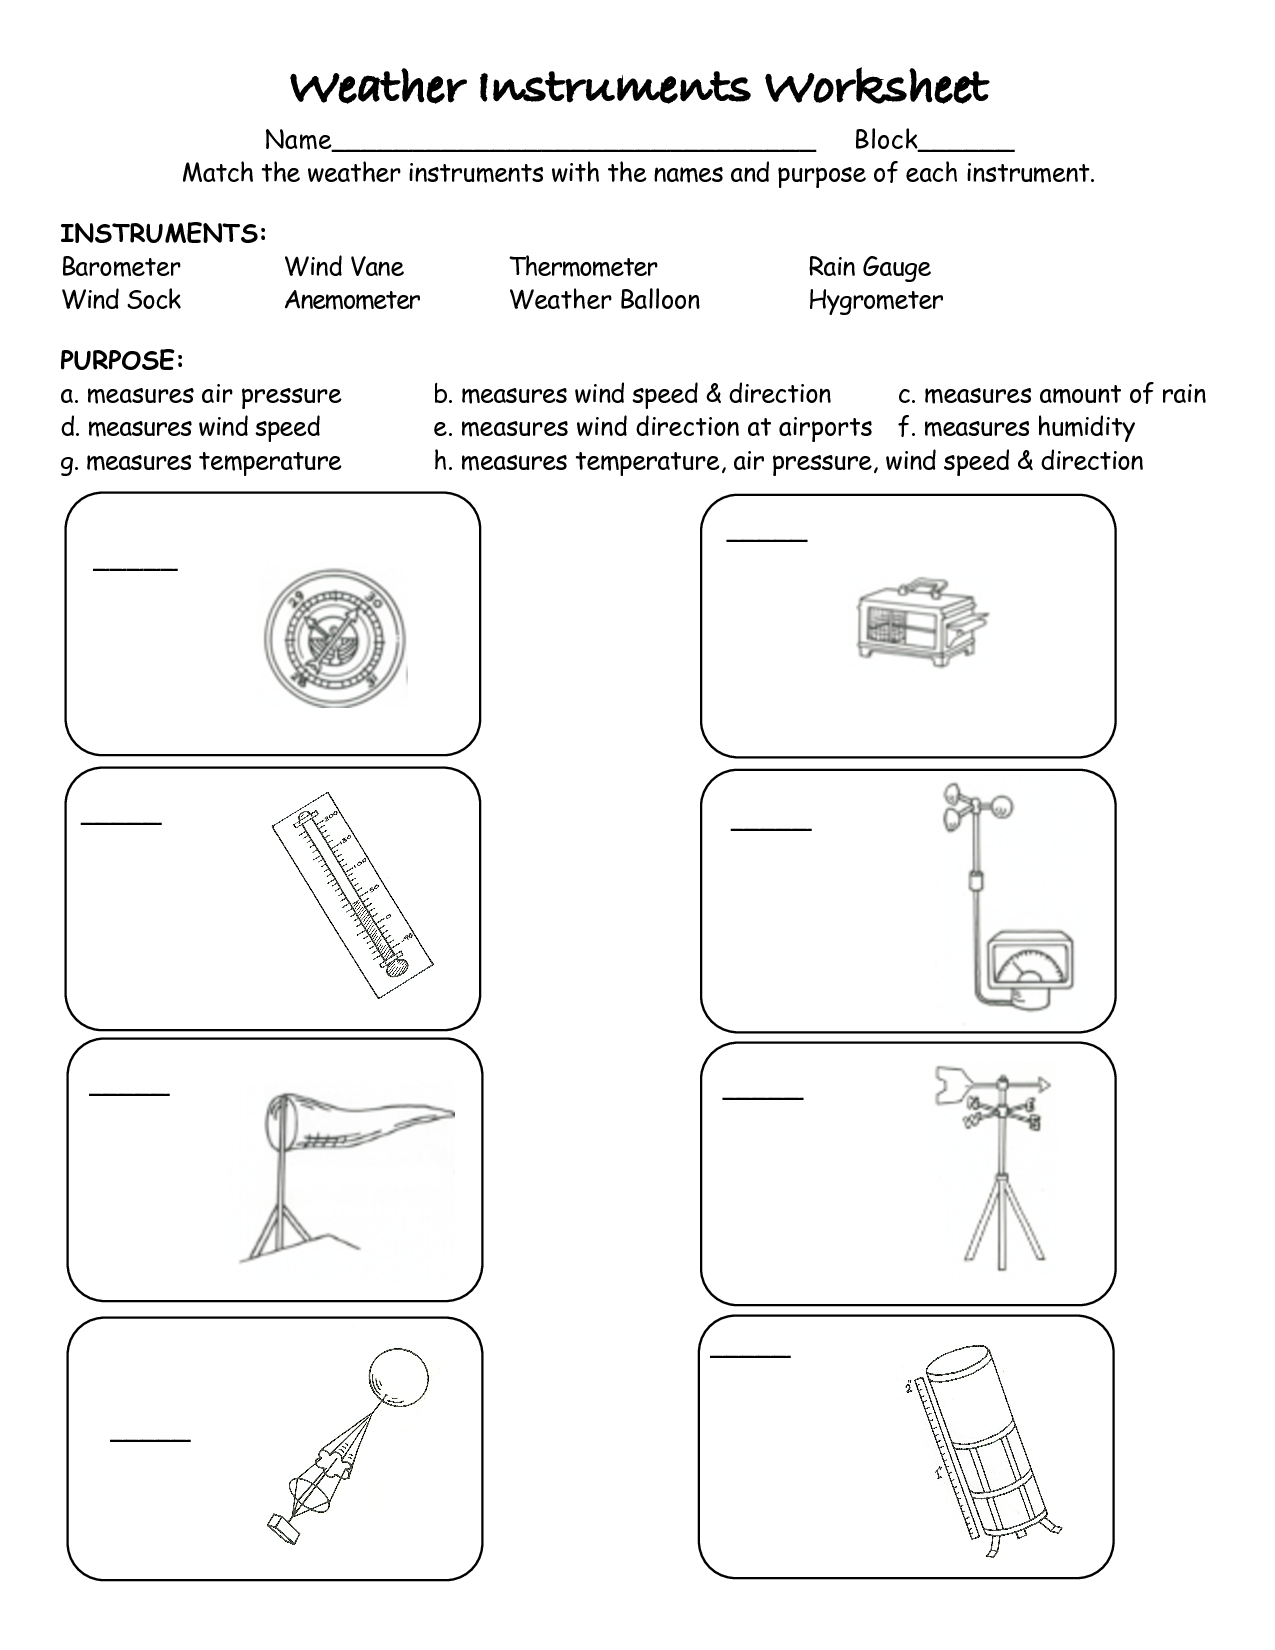 worksheets weather instruments weather worksheets pdf. Black Bedroom Furniture Sets. Home Design Ideas